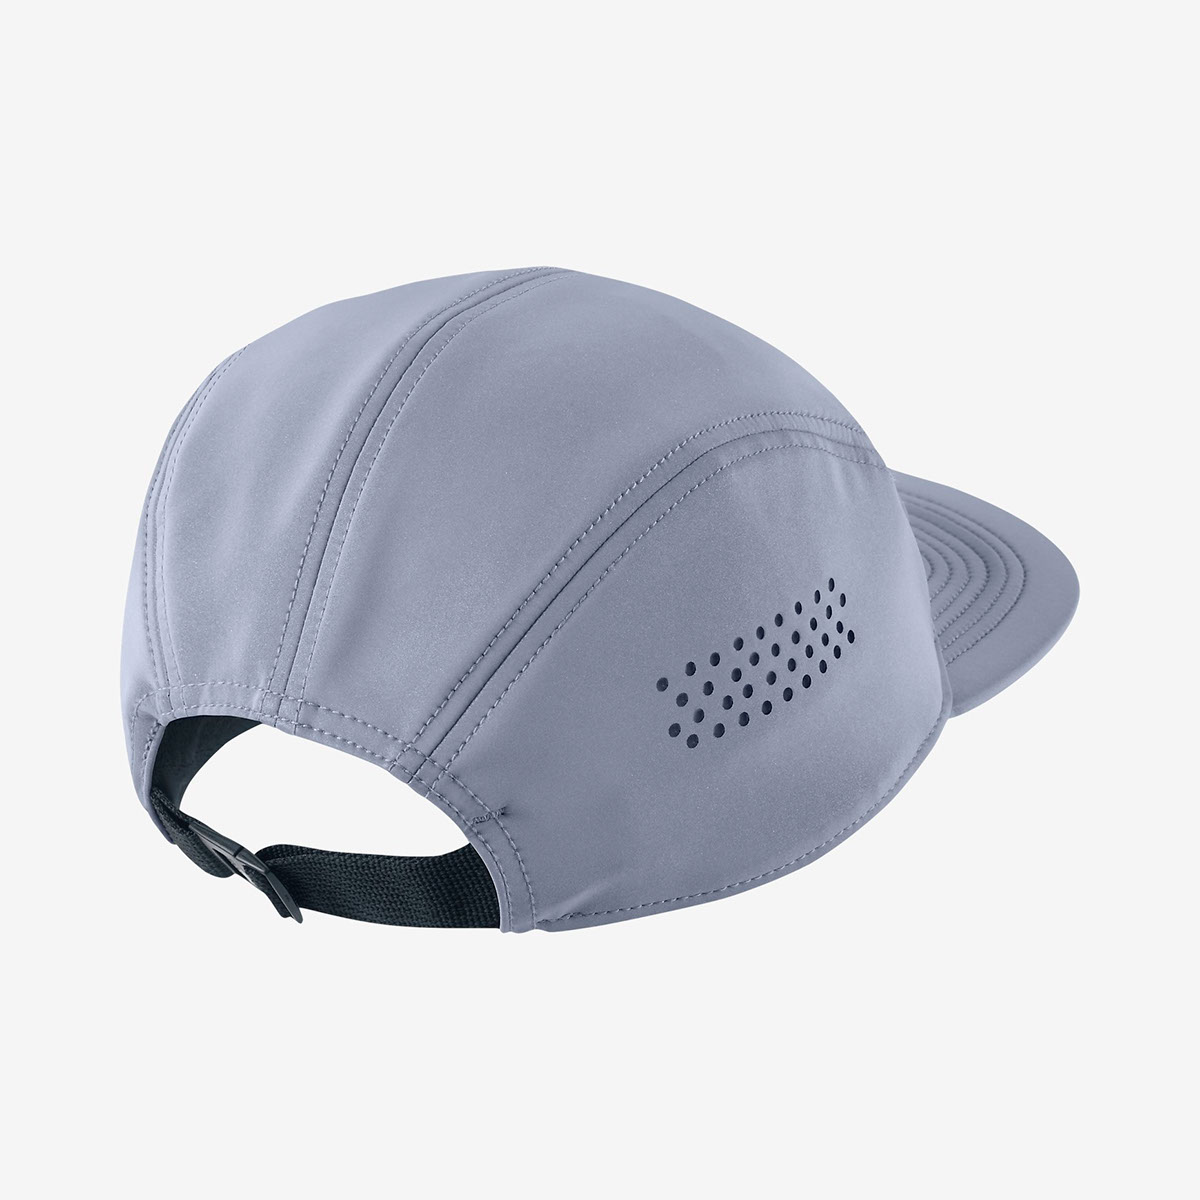 7601319eb7a4c Nike AW84 Flash Cap. Ian Saiki •. Follow Following Unfollow. Save to  Collection